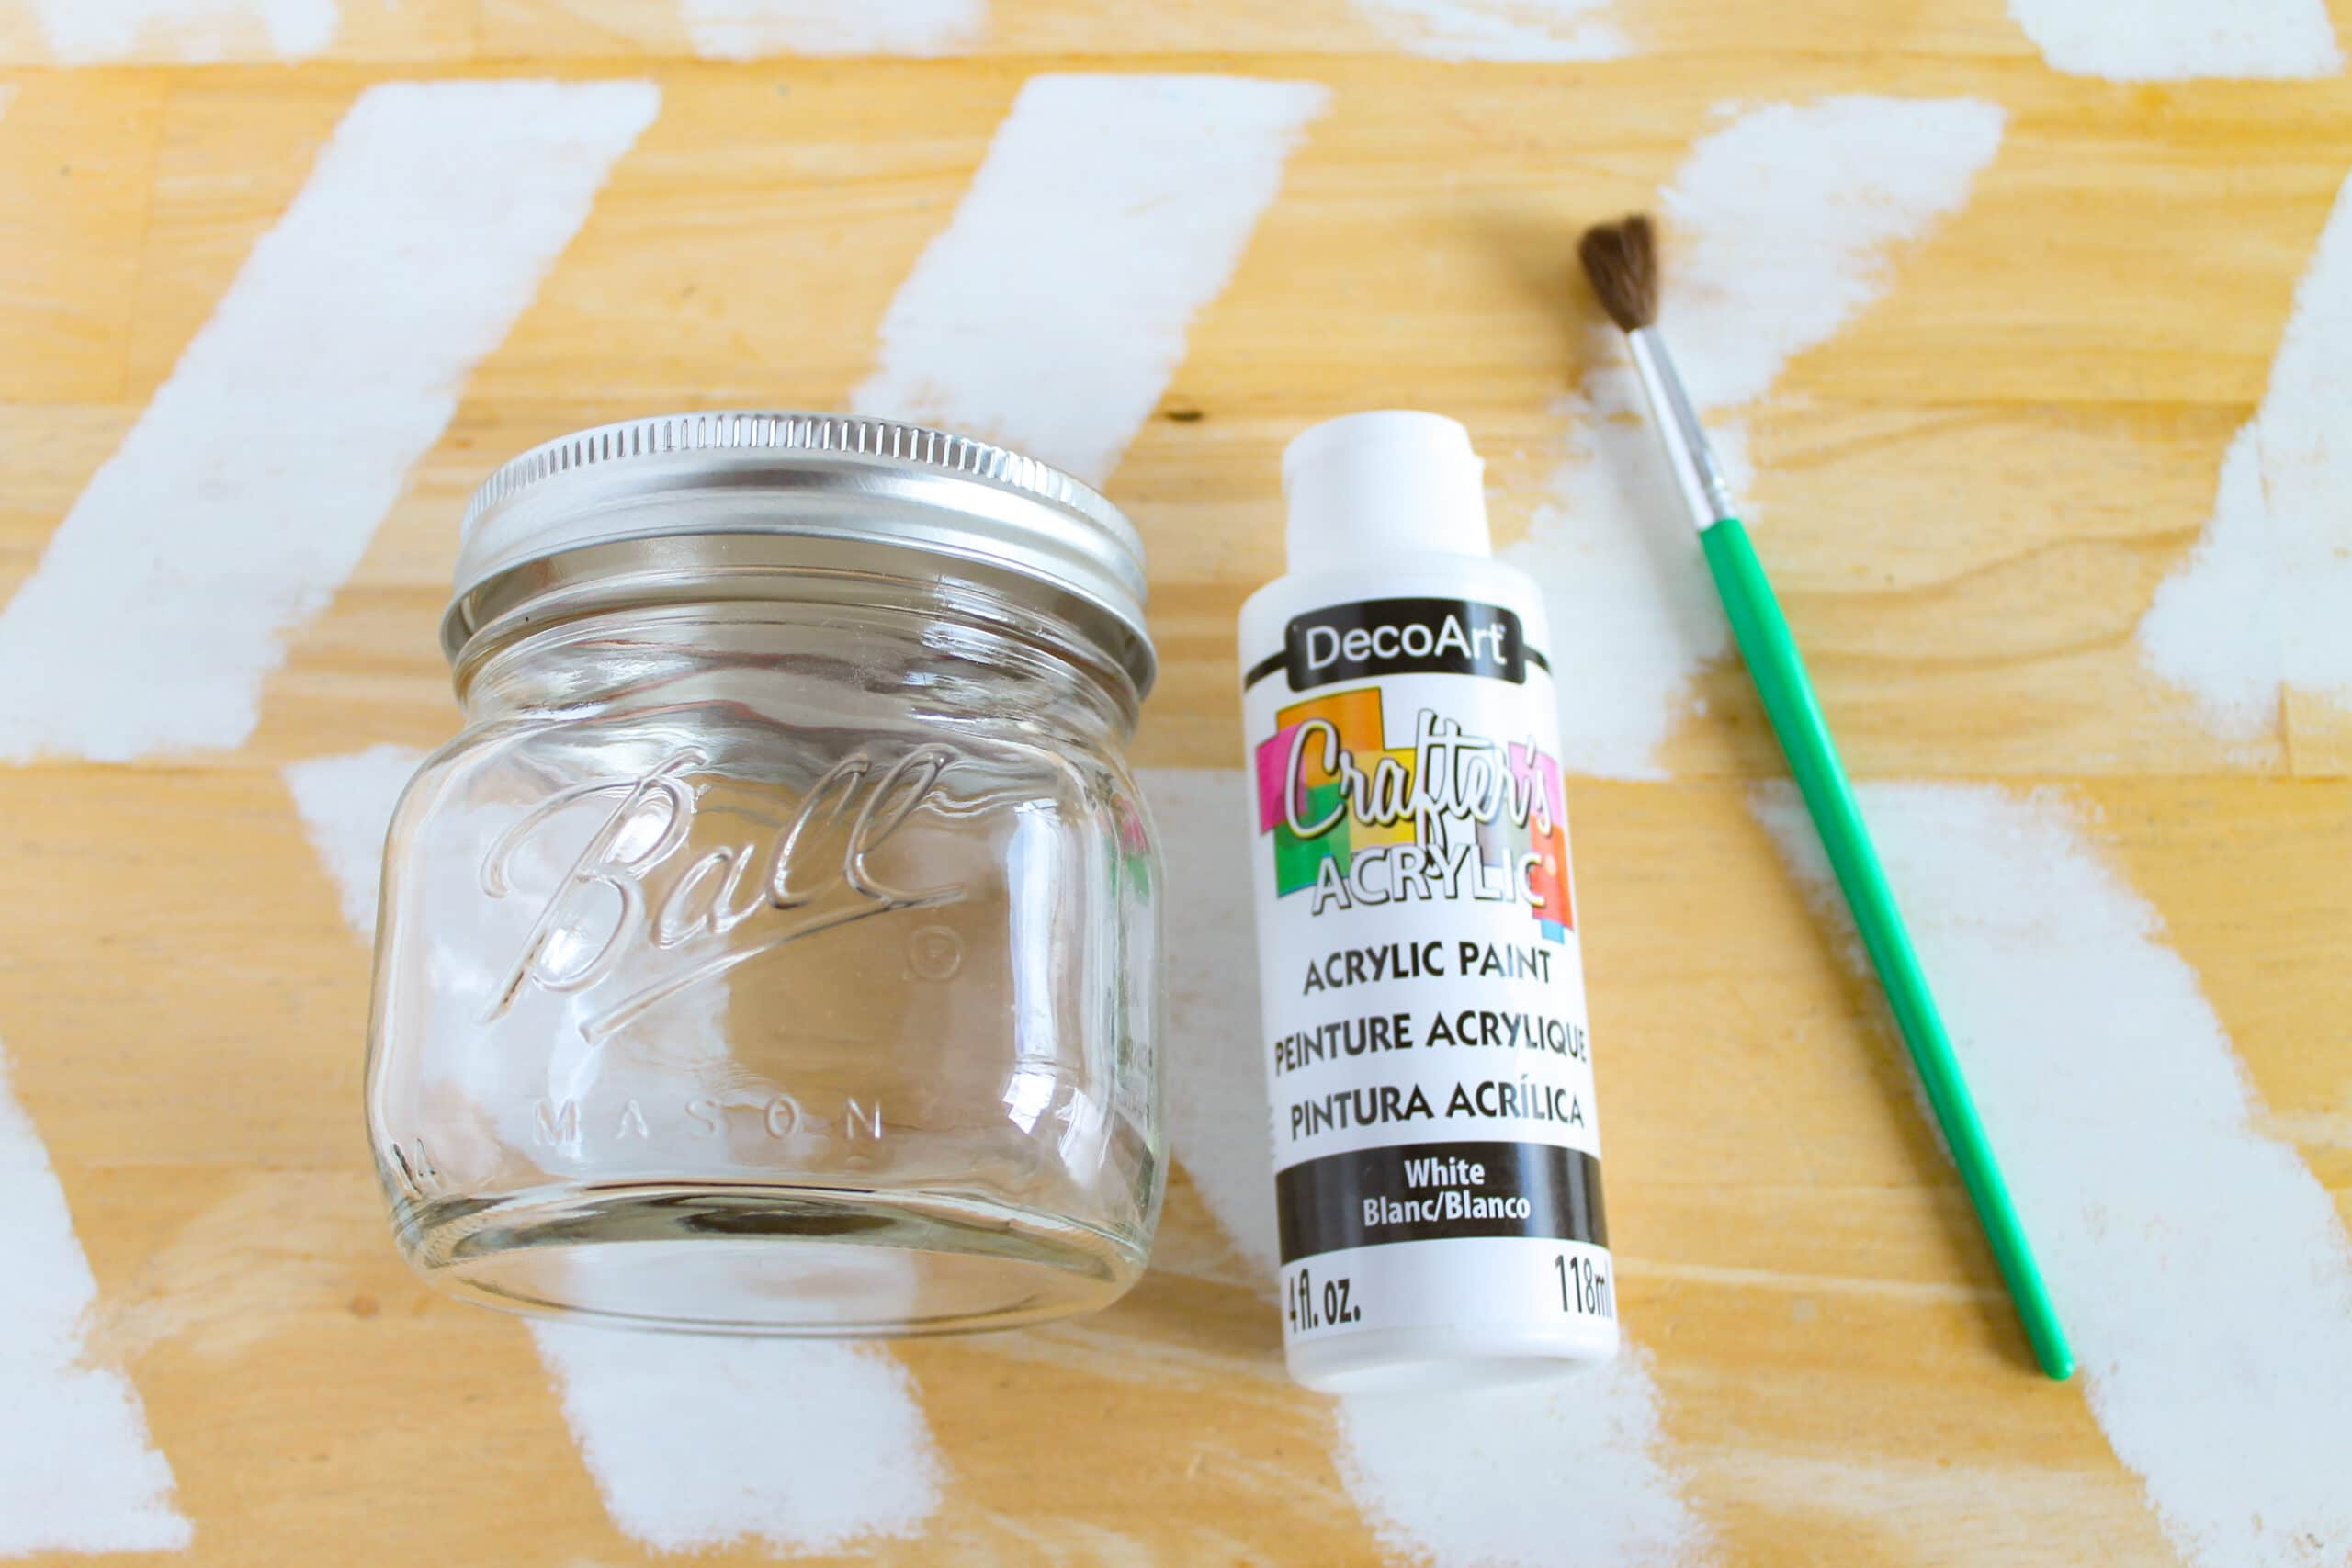 Mason Jar Craft Jack Skellington Supplies. This Jack Skellington Mason Jar Halloween Craft is the perfect way to creep your way into the Halloween season. Fill it with your favorite candies and treats, it's the perfect Halloween Craft that you can keep or gift.